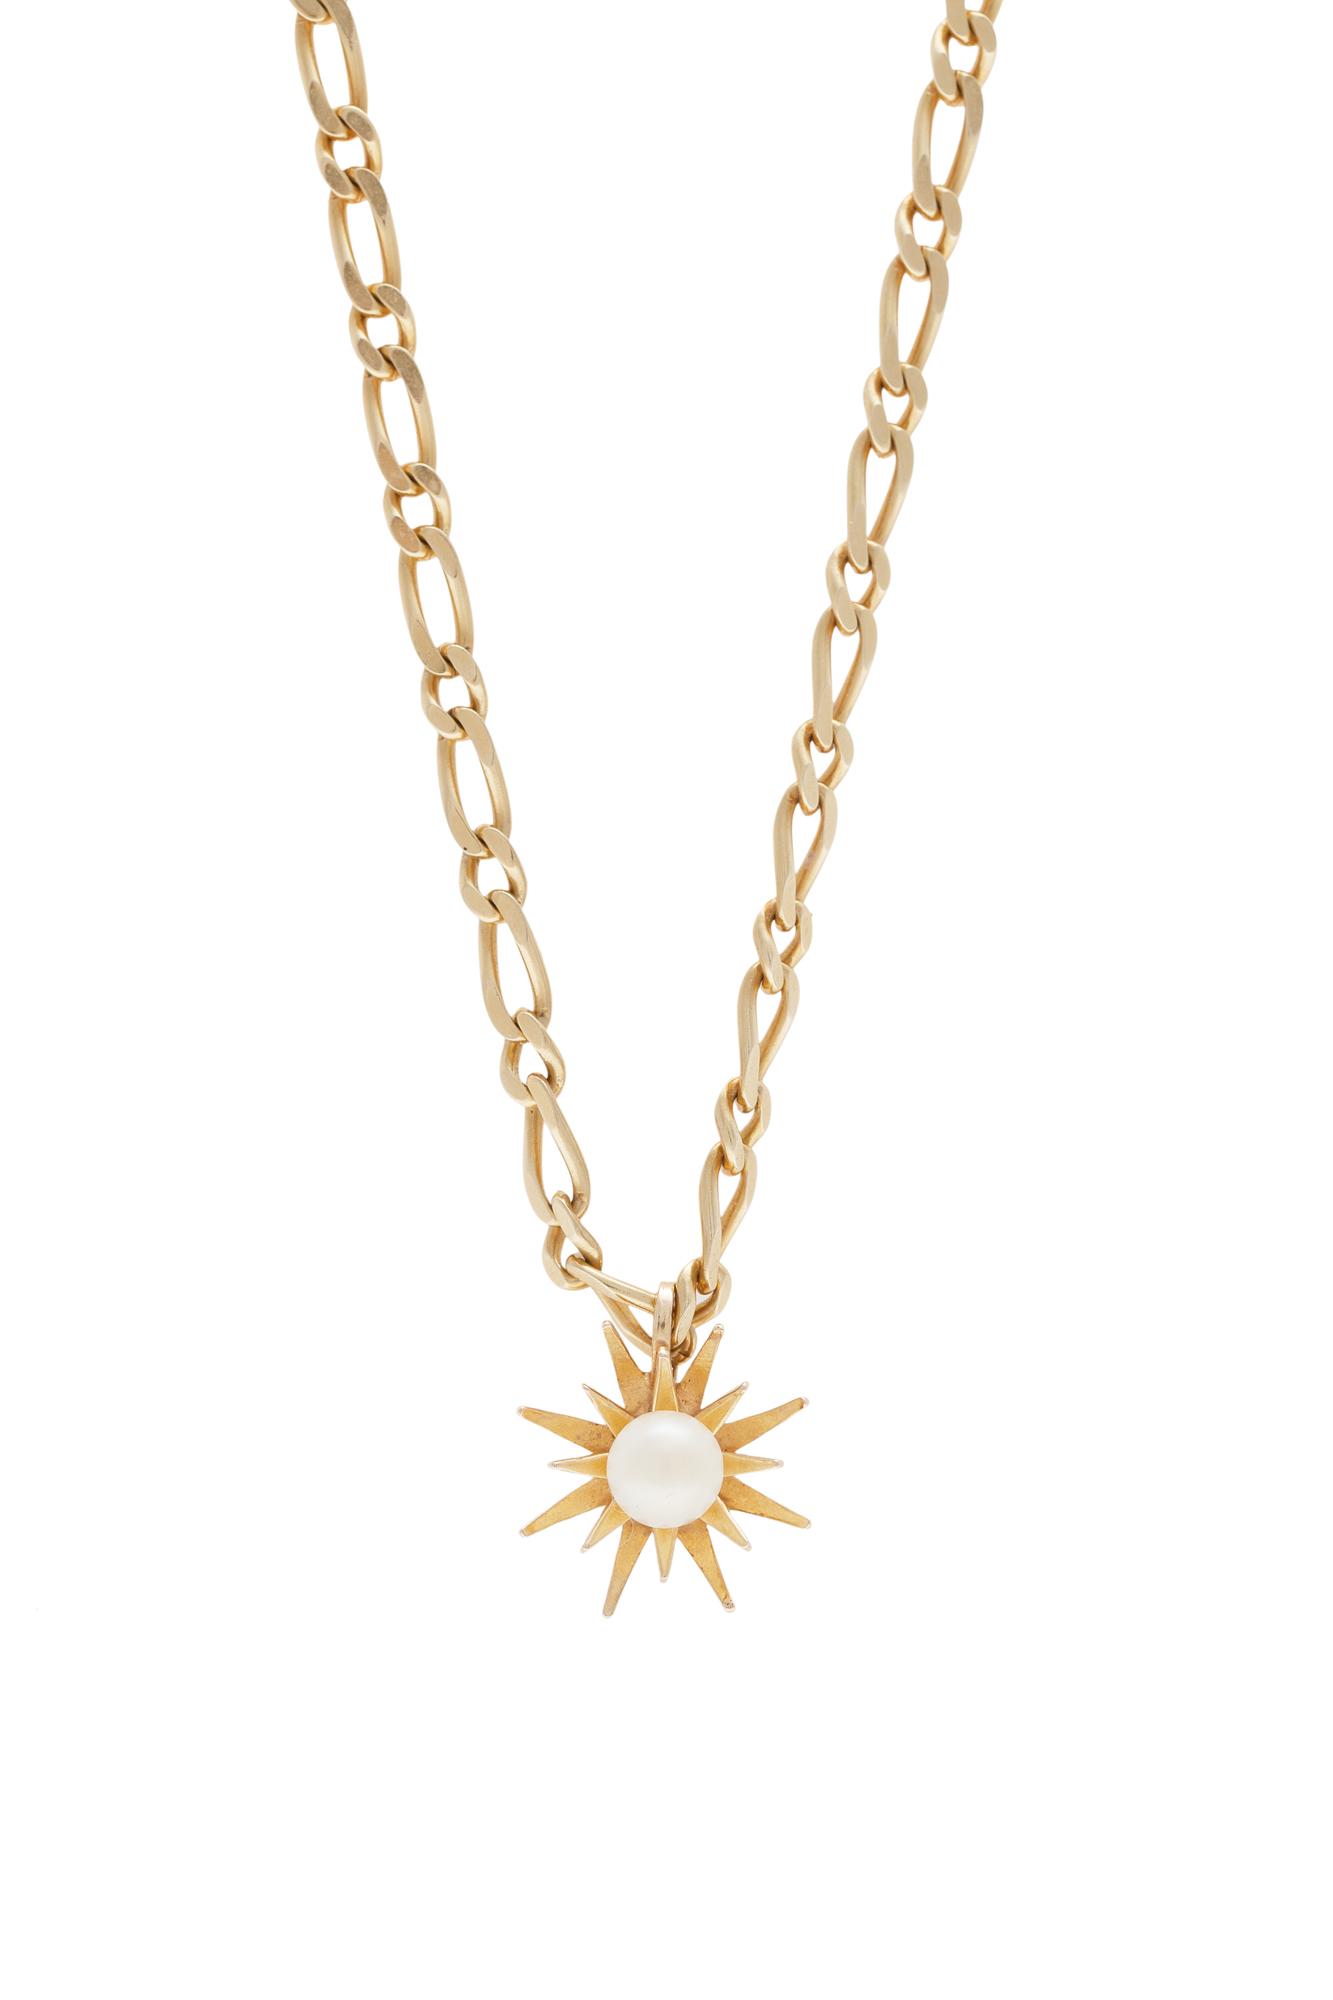 An 18 carat gold and cultured pearl pendant the star shaped pendant lot 15 an 18 carat gold and cultured pearl pendant the star shaped pendant mozeypictures Choice Image